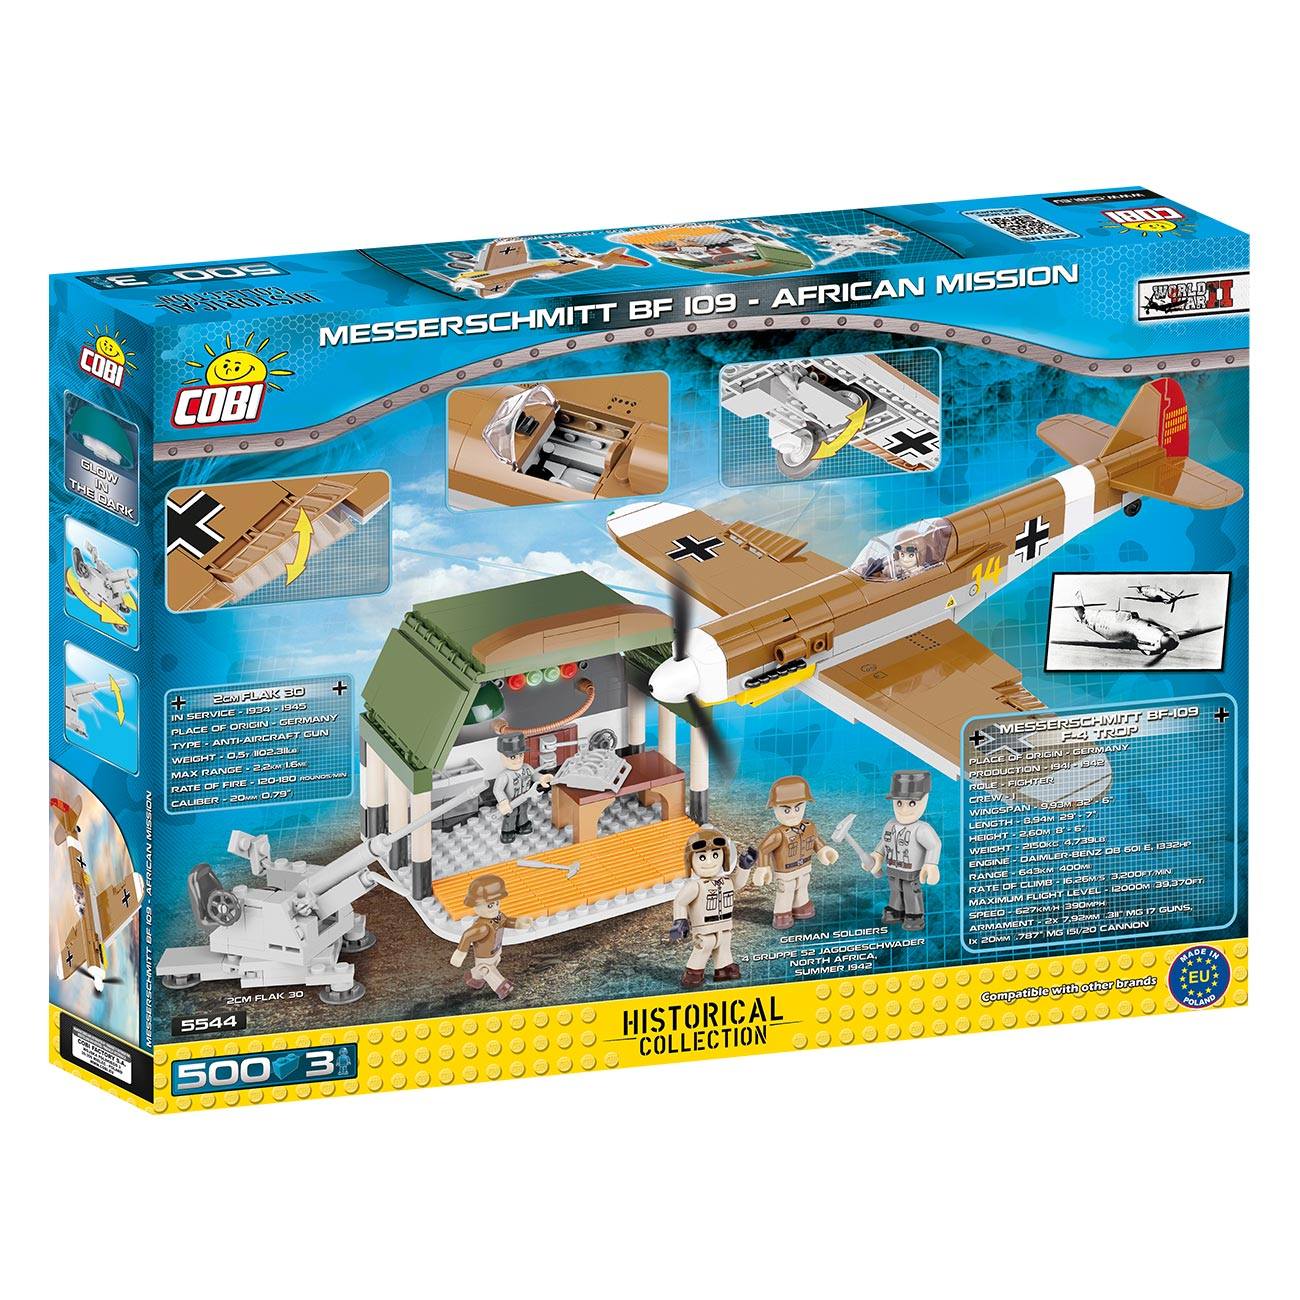 Cobi Historical Collection Bausatz Flugzeug BF 109 African Mission 500 Teile 5544 2